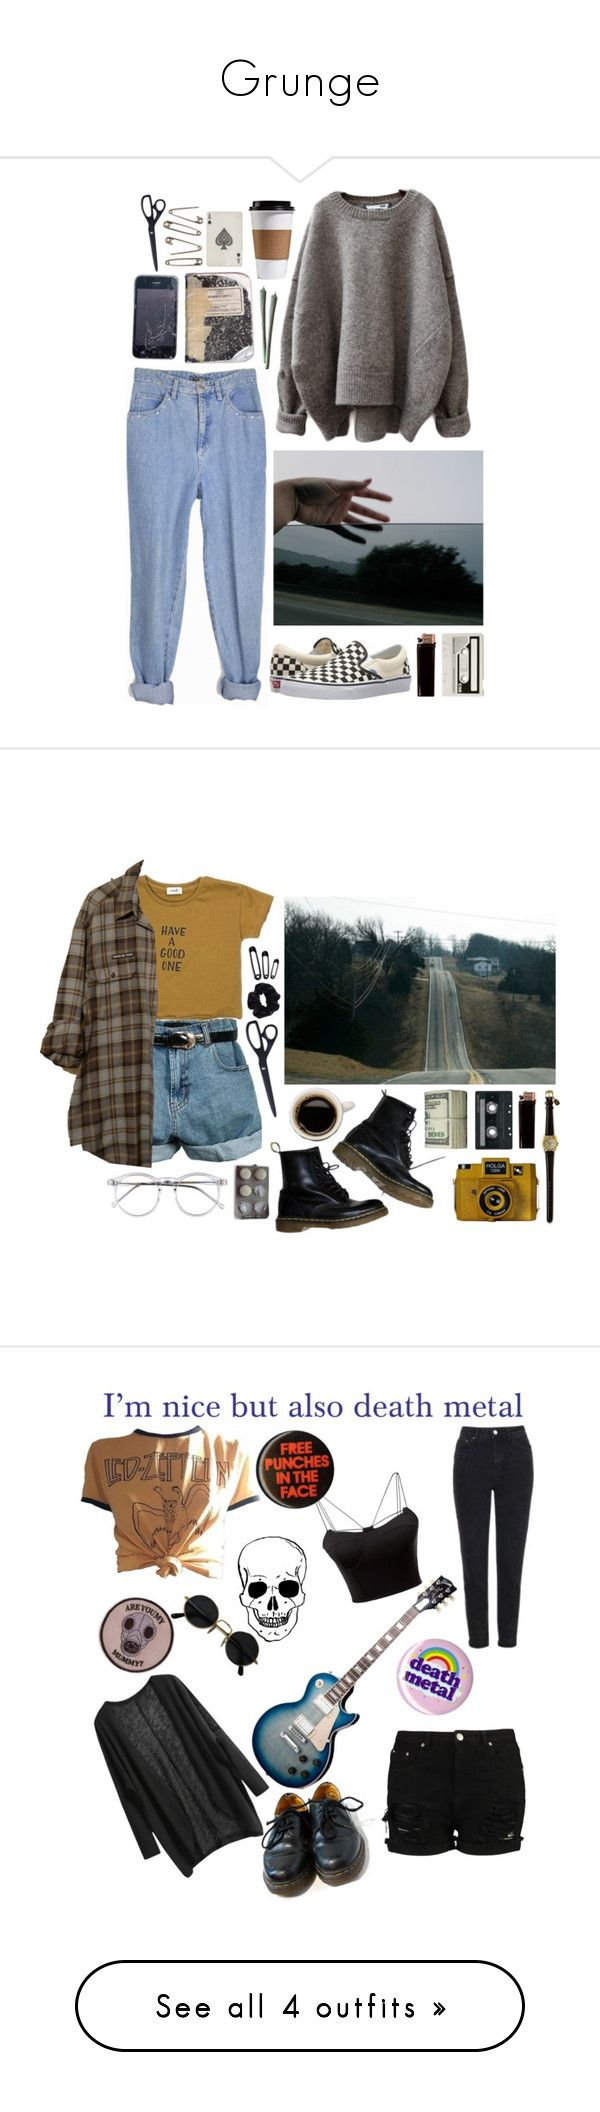 """""""Grunge"""" by asoky ❤ liked on Polyvore featuring Vans, GAS Jeans, CASSETTE, HAY, vintage, Retrò, Dr. Martens, Holga, Wildfox and American Apparel"""